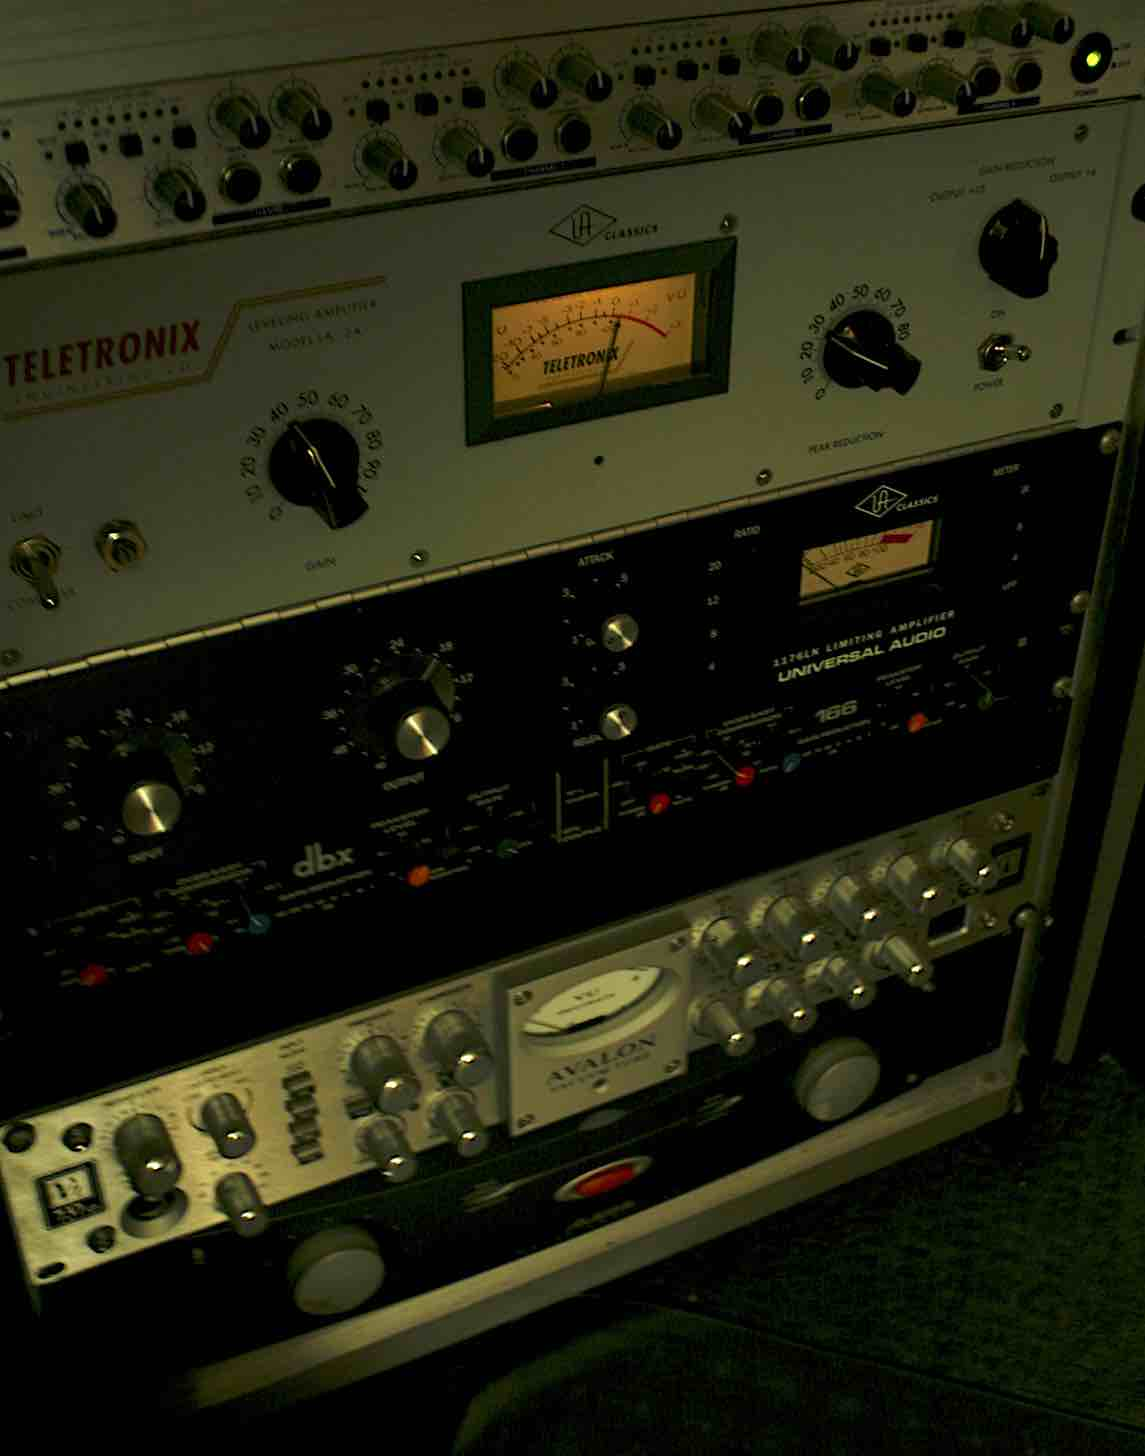 Outboard & Microphones - Wundenberg's also has some great outboard gear. Various outboard preamplifiers and compressors are available. (LA-2A, 1176, Pacifica, Mike-E etc).The studio also has a microphone list made up of industry standard equipment (U87, Coles 4038, SM7B, MD421, MD441 SM57 etc).Please see our gear list for a comprehensive overview.